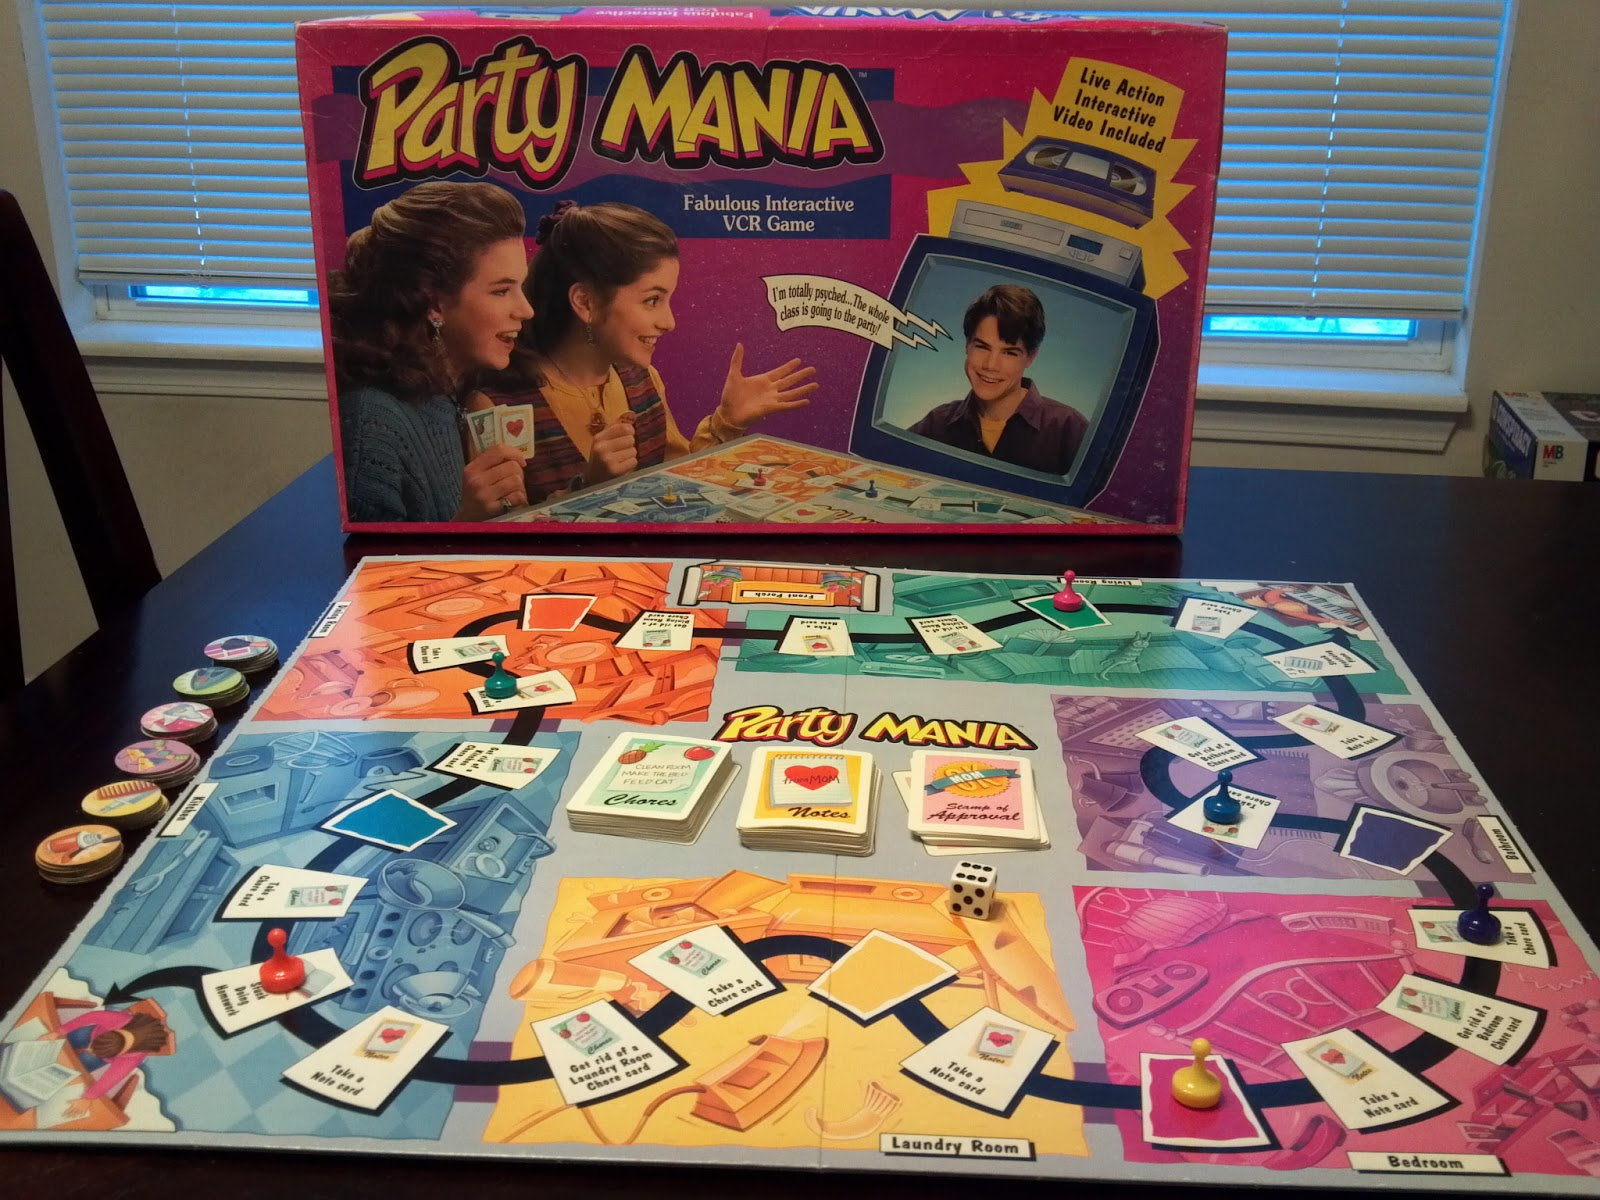 Find great deals on eBay for party mania and party mania game. Shop with confidence.